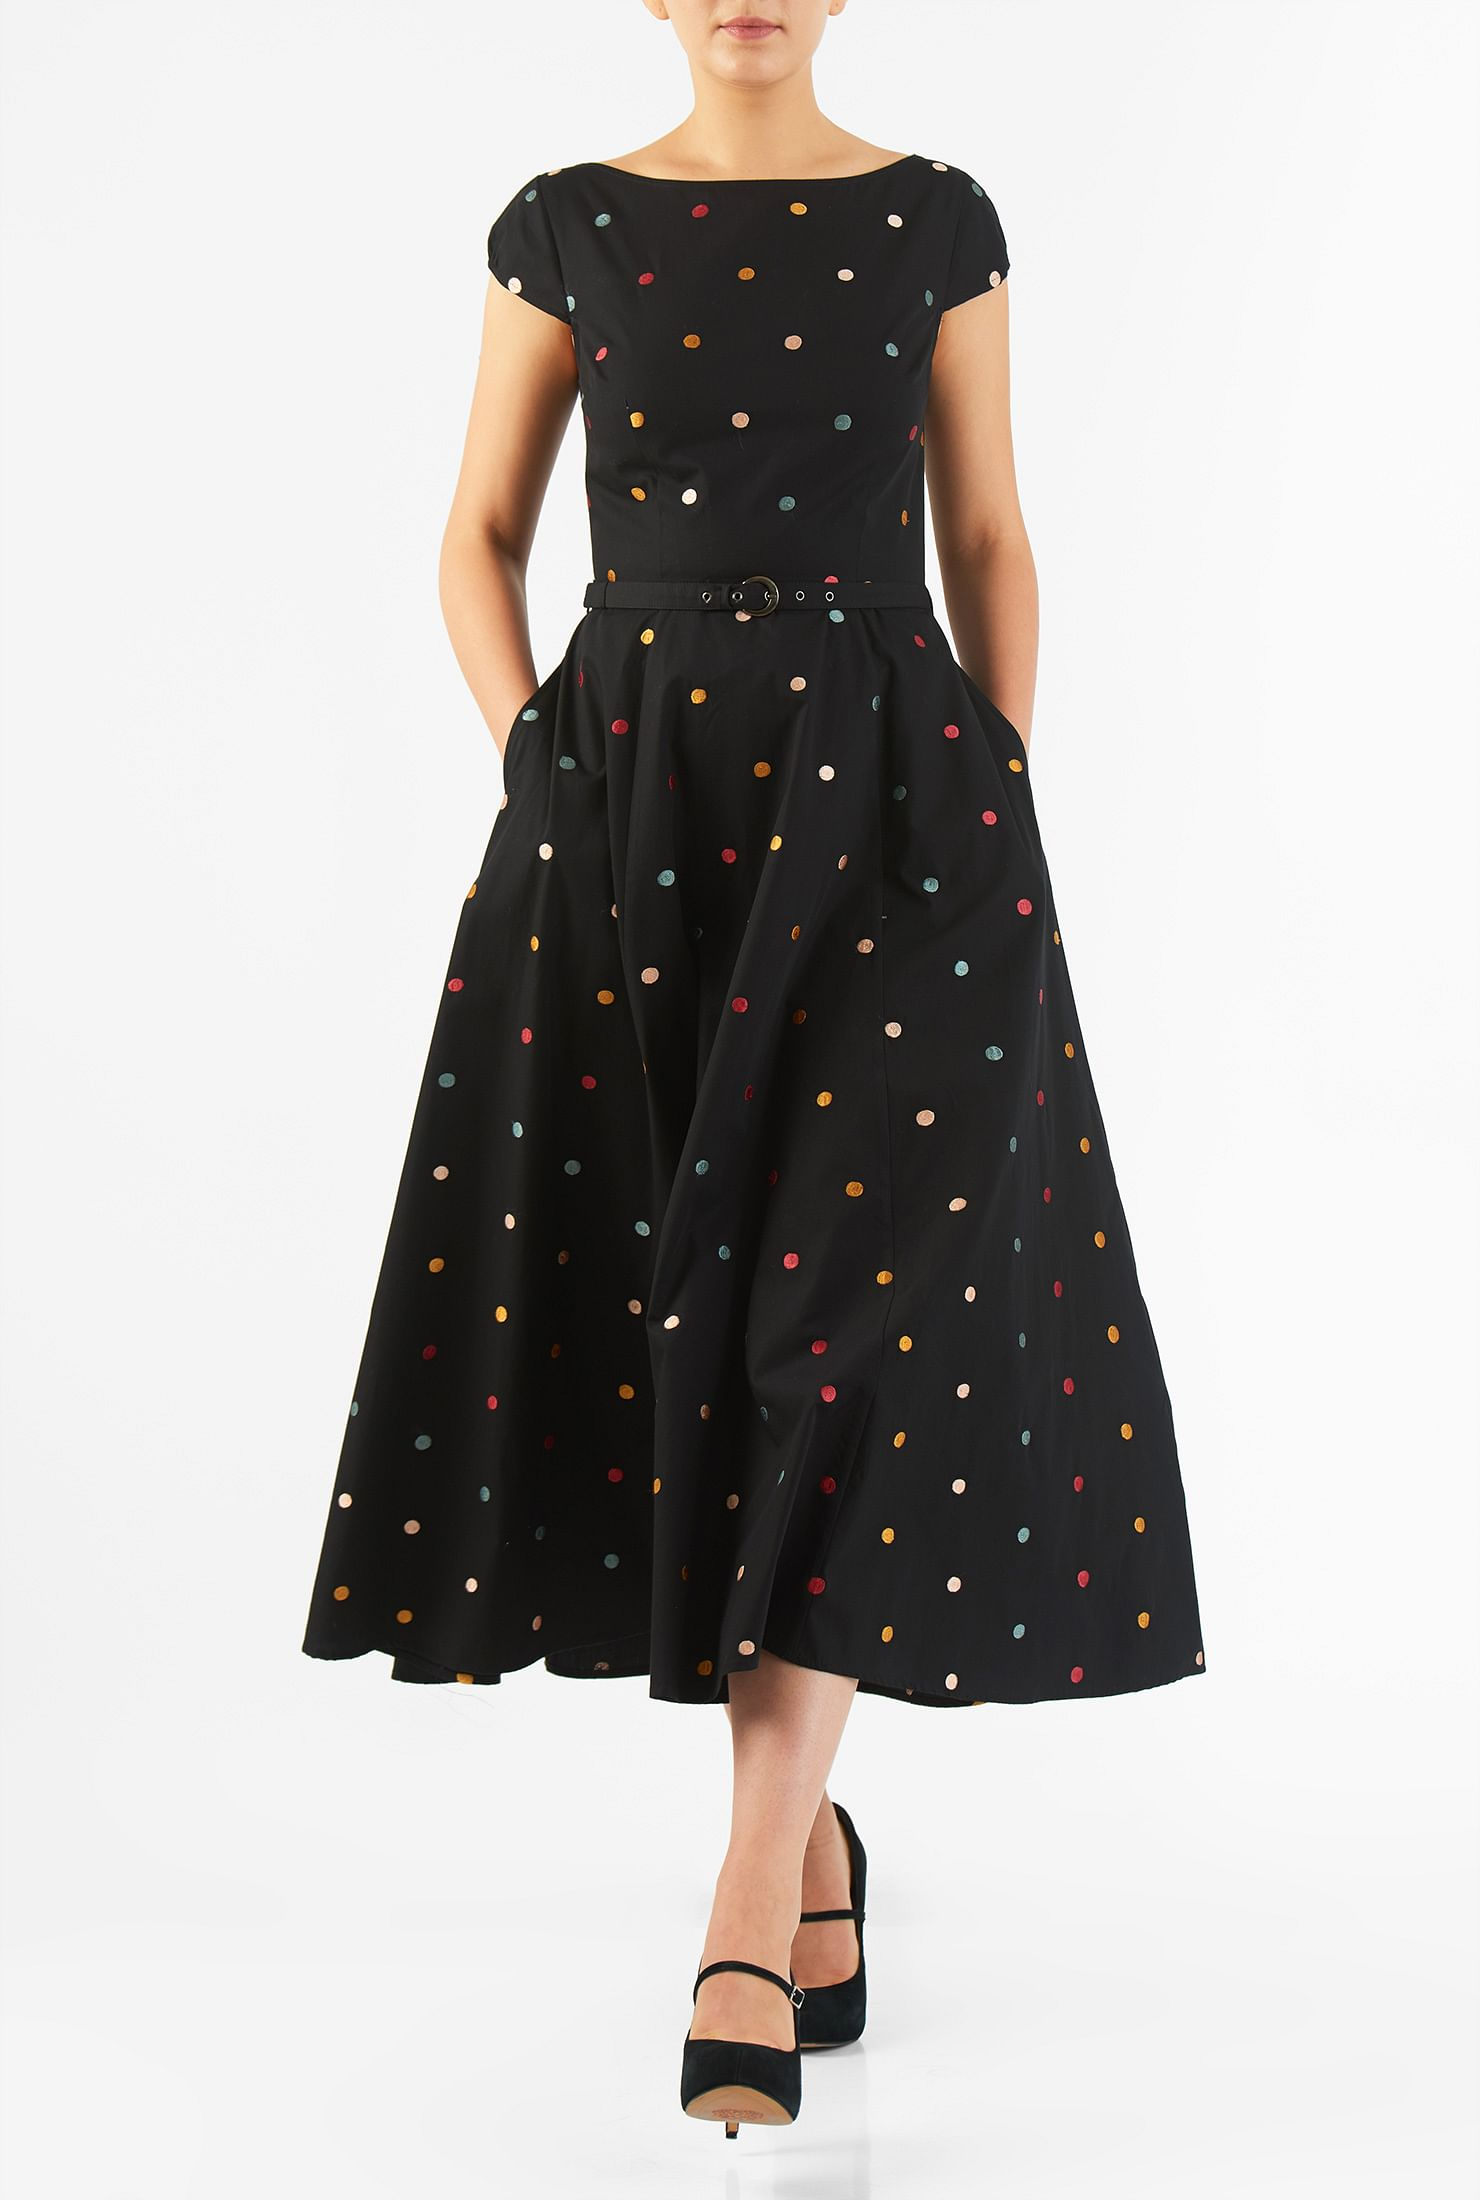 eShakti Women's Polka dot embellished poplin dress